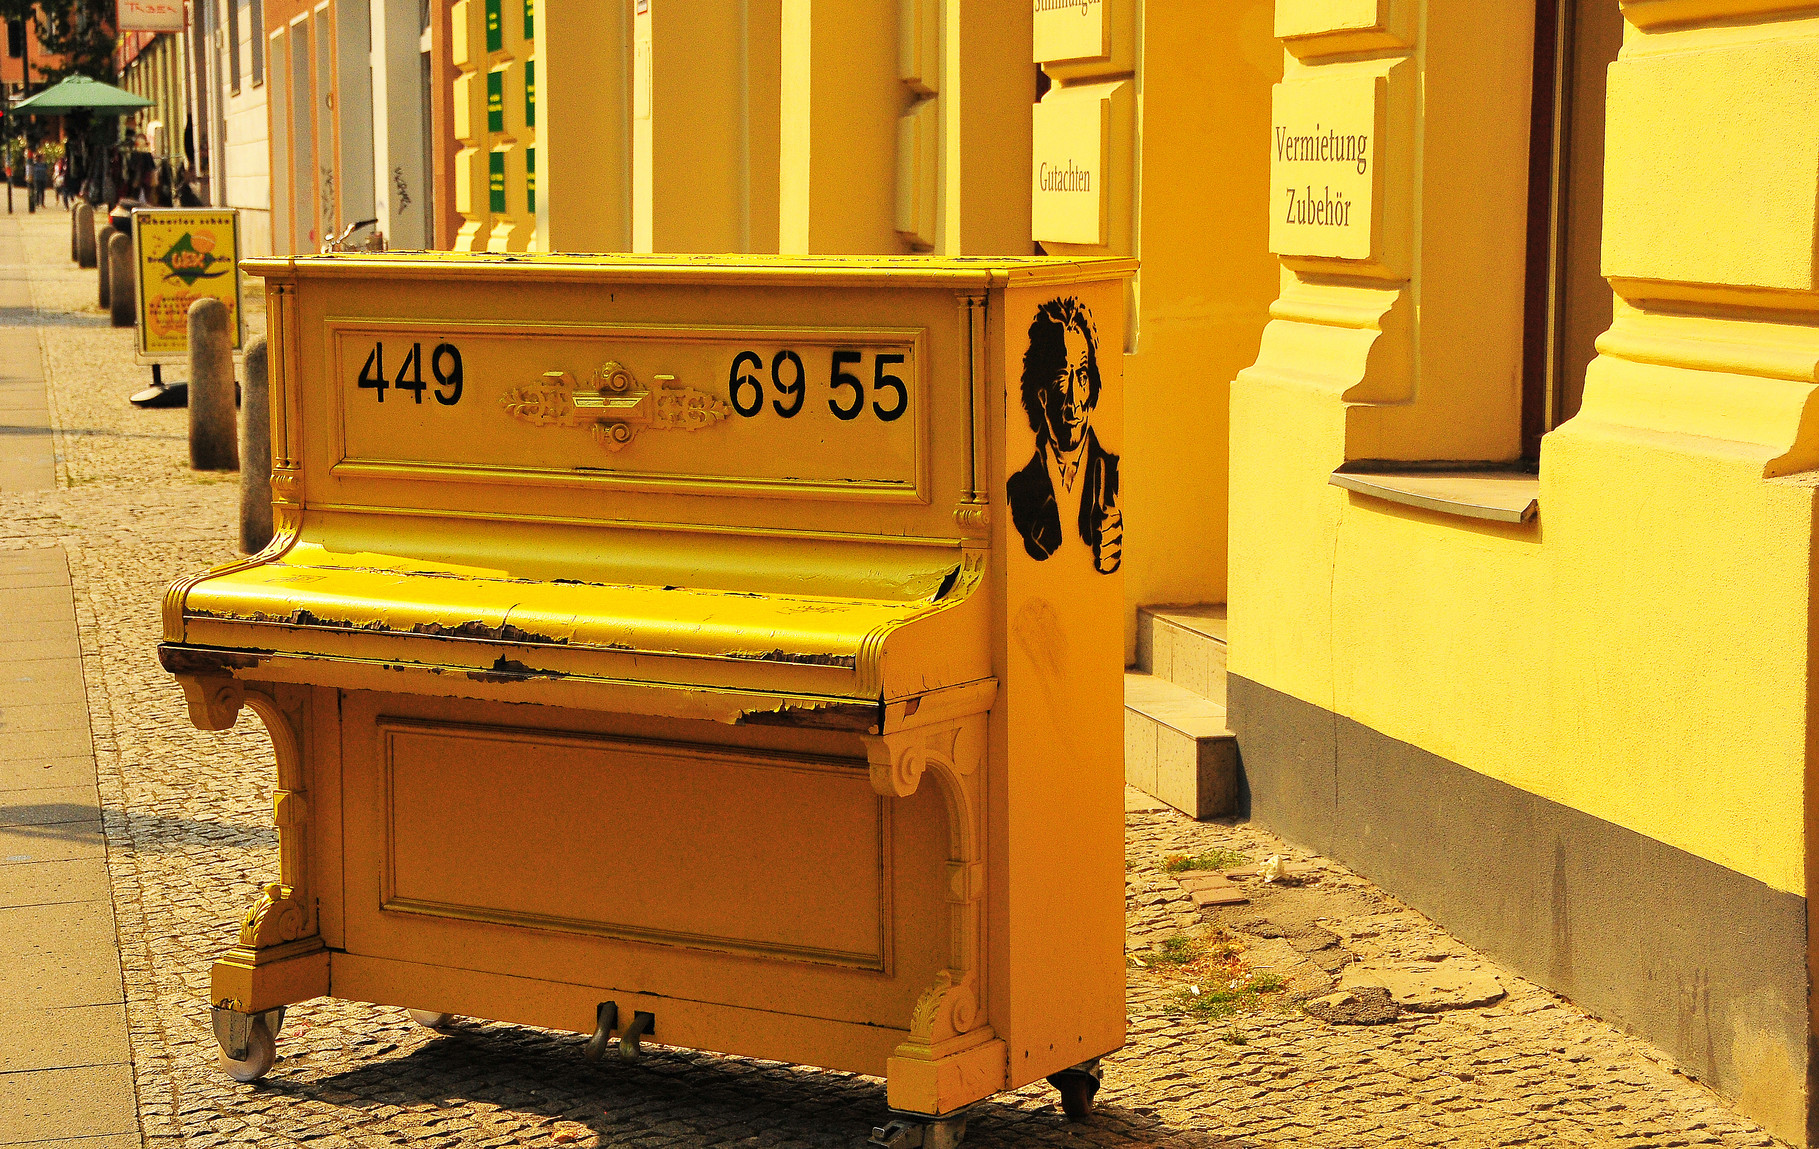 I have a piano in Berlin